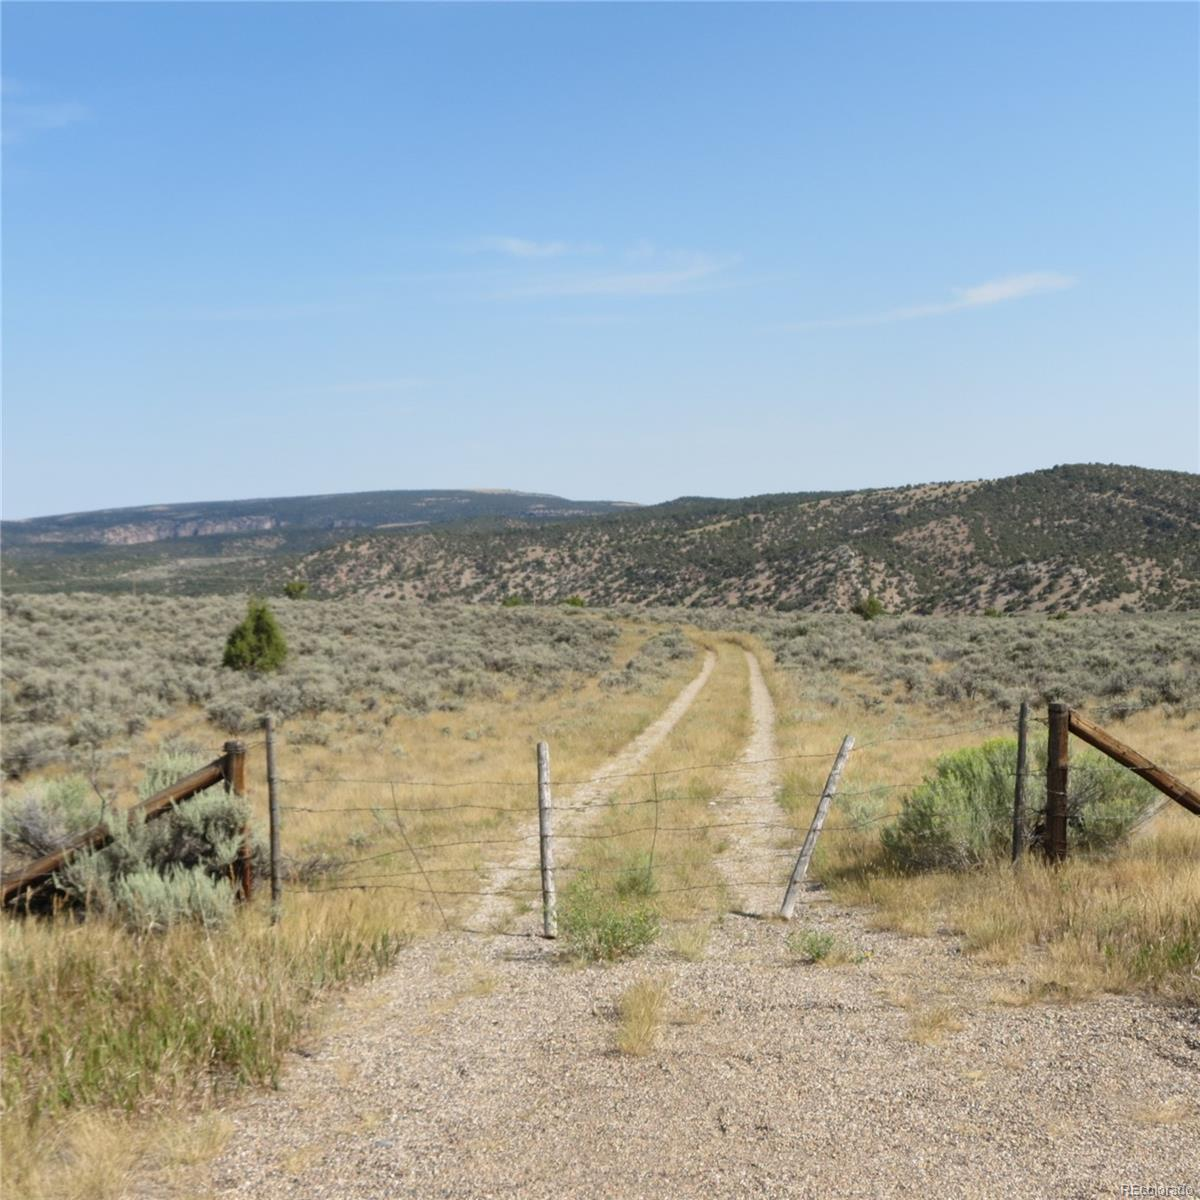 0 US HWY 40, Maybell, CO 81640 - Maybell, CO real estate listing